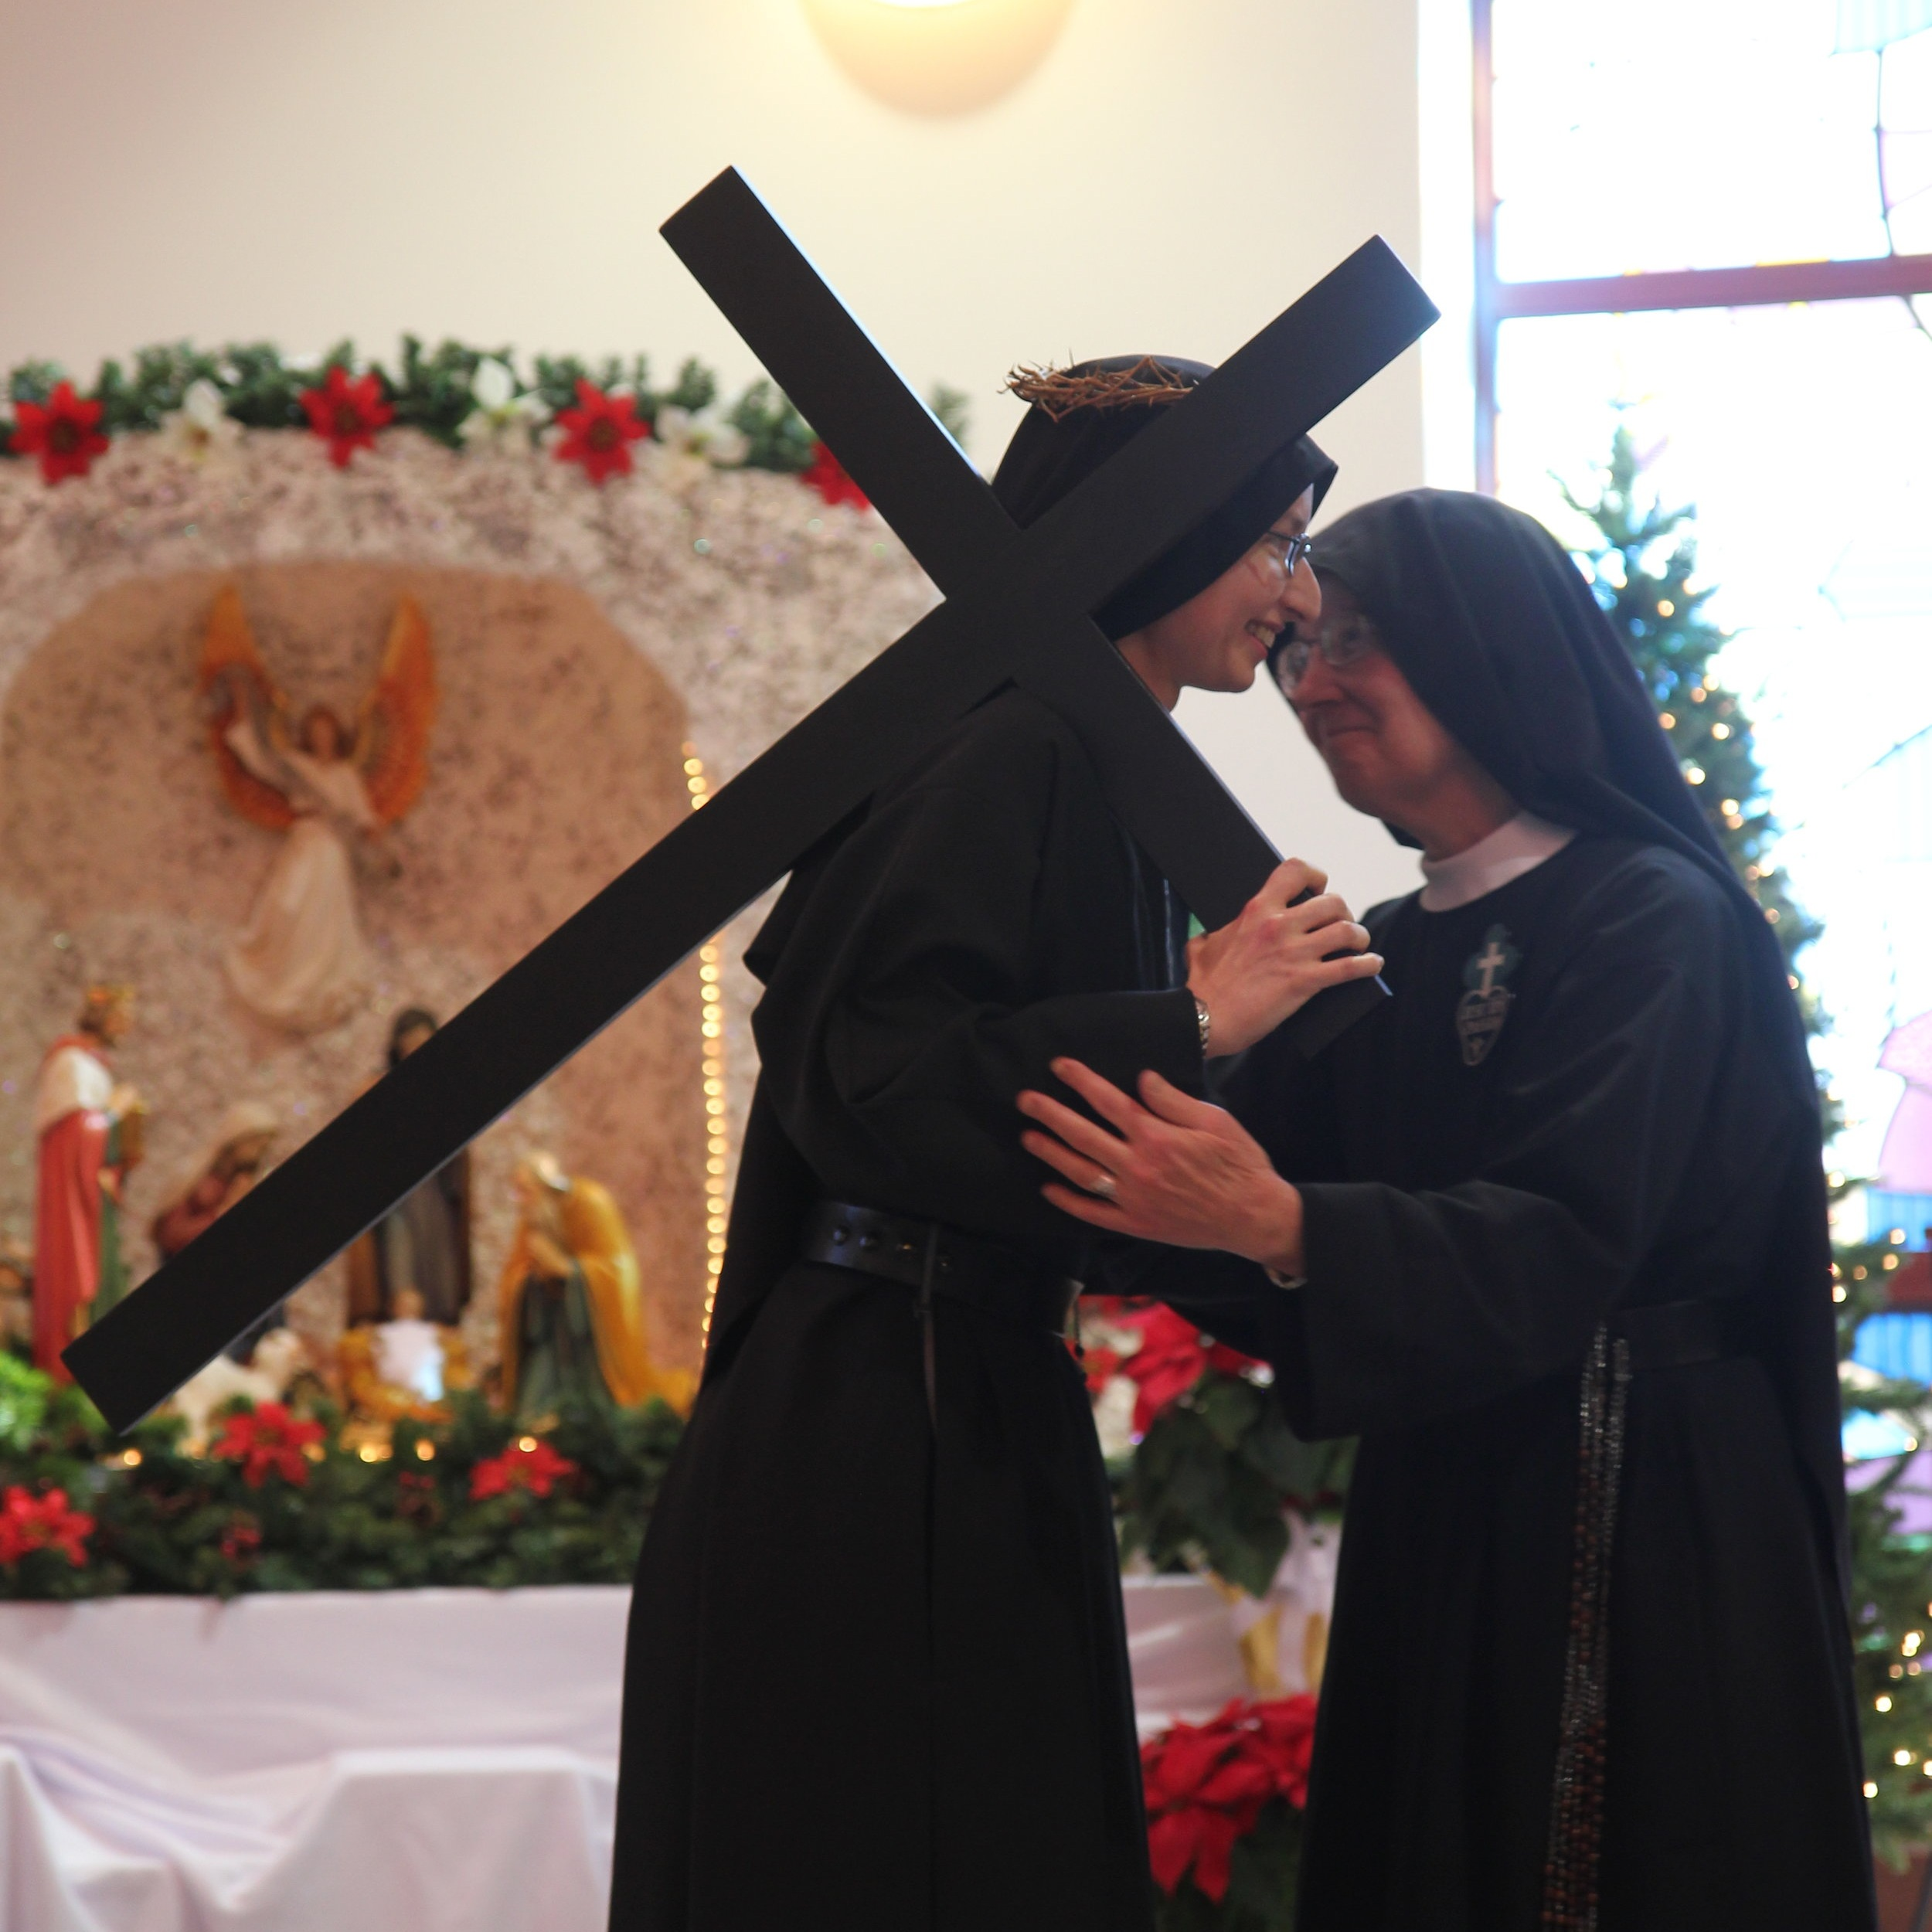 Sr. Mary Veronica, Novice Mistress and Juniorate Directress, exchanges the sign of peace with her spiritual daughter